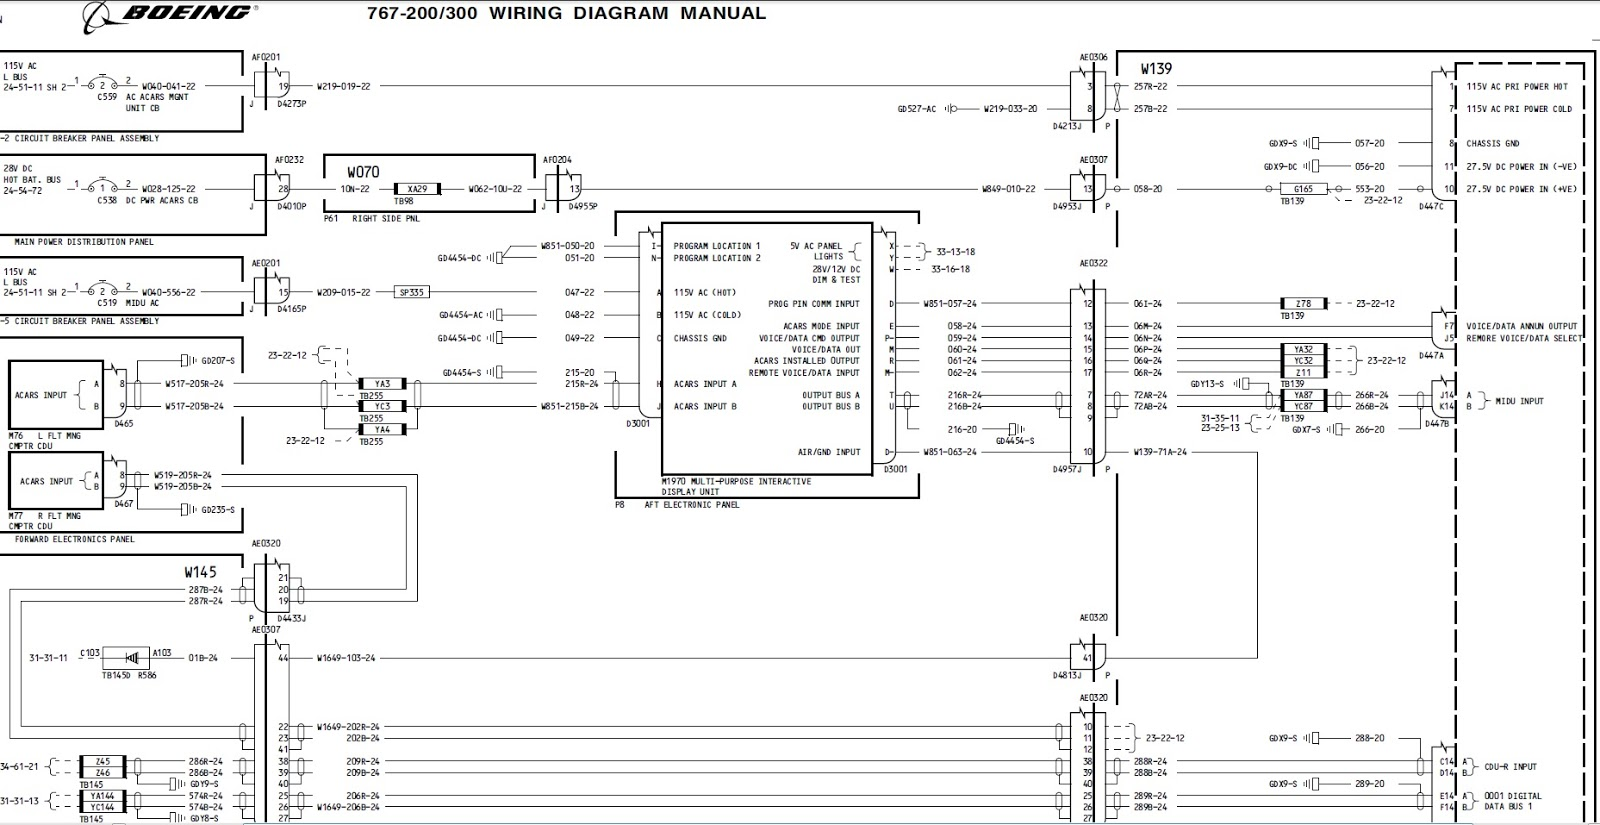 acars avionics wiring diagrams mike aircraft wiring diagrams \u2022 wiring wiring diagram simulator at nearapp.co